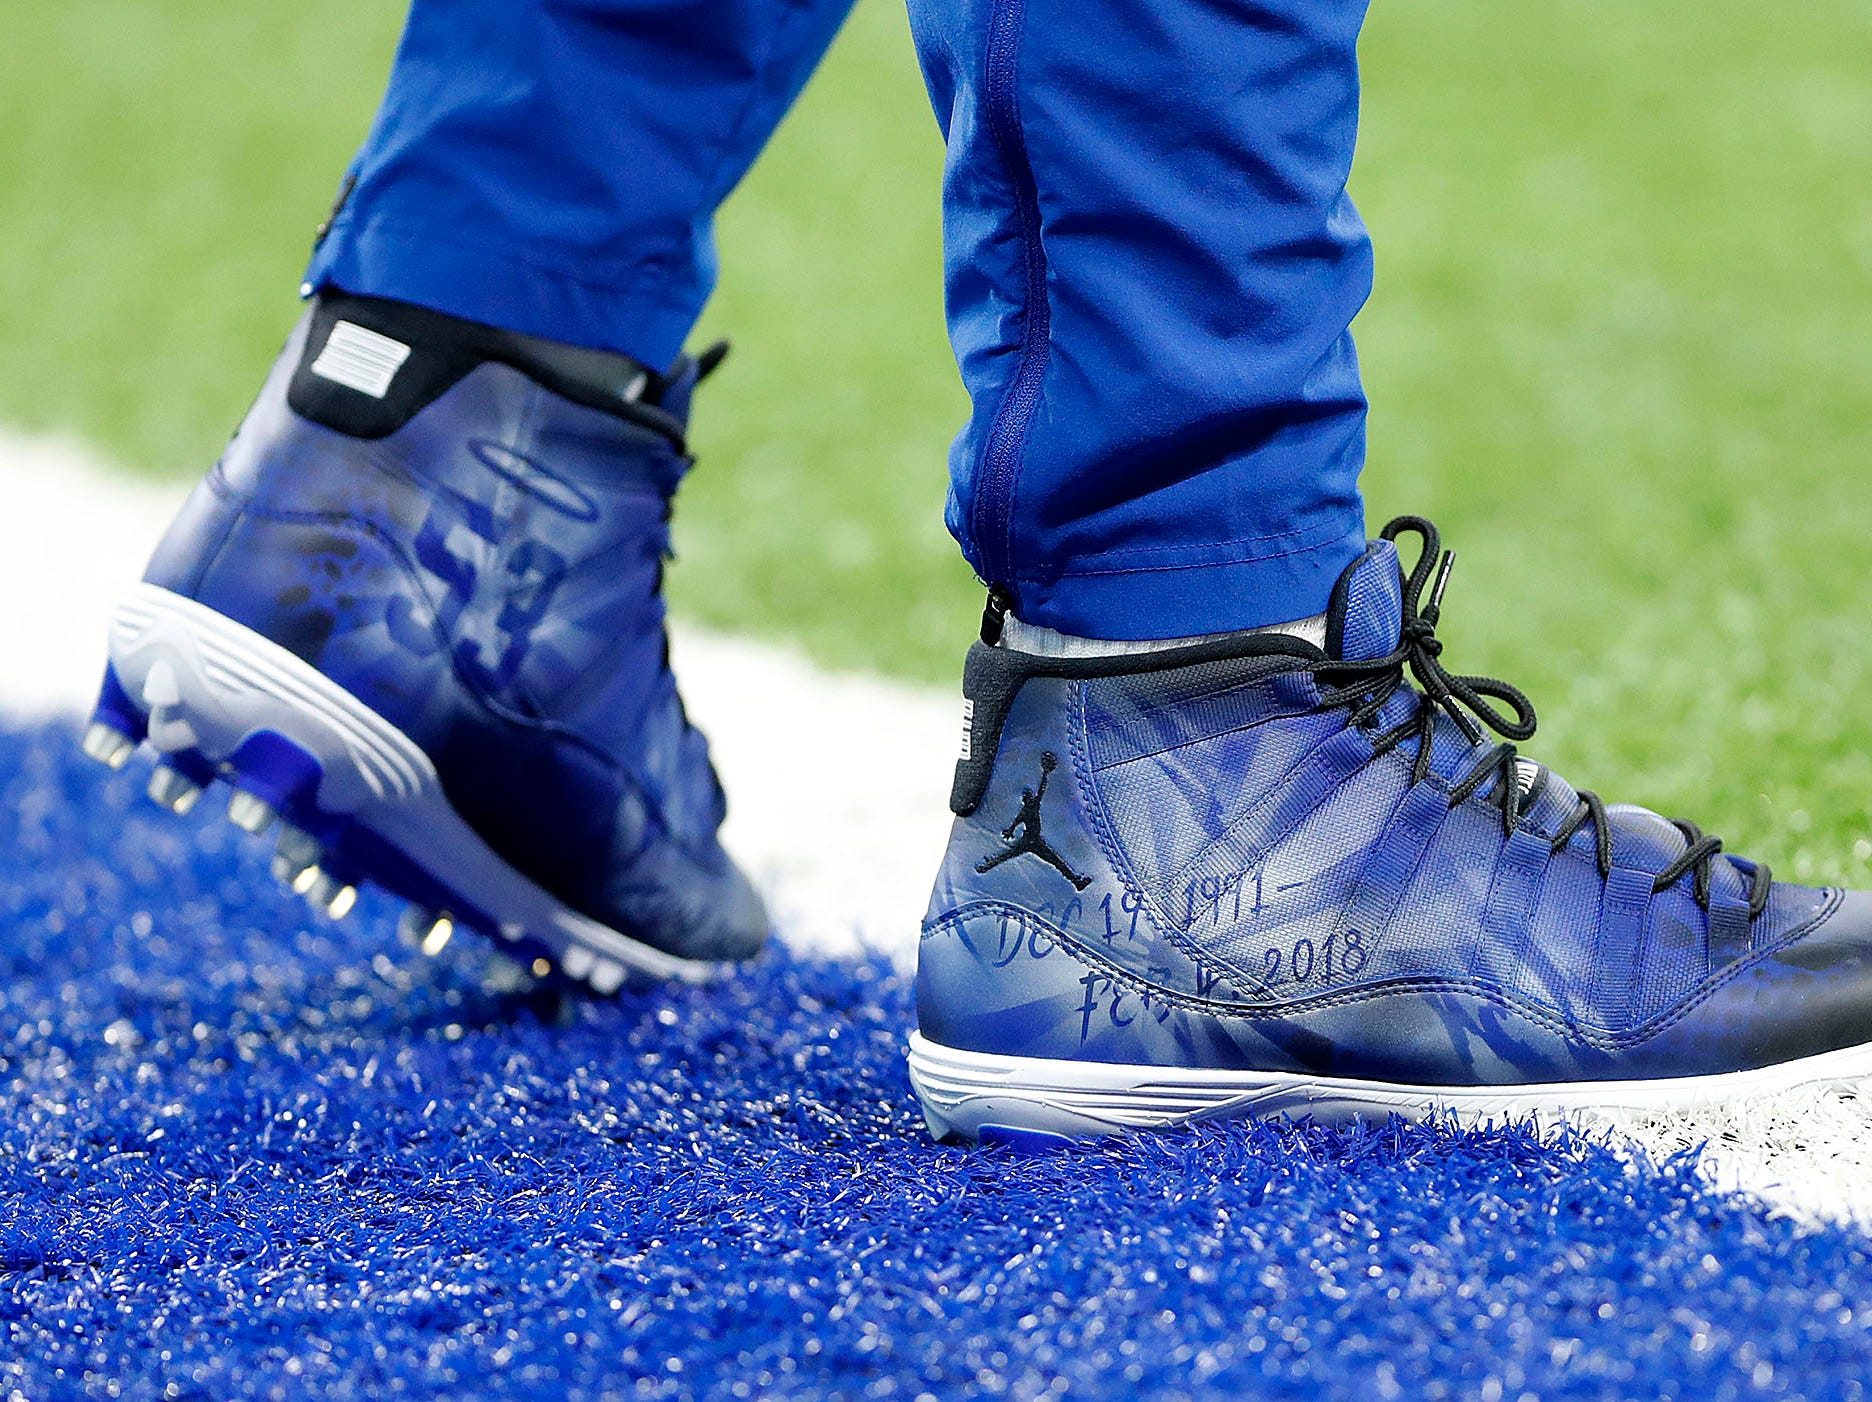 Indianapolis Colts outside linebacker Darius Leonard (53) and his My Cleats, My Cause before the start of their game against the Dallas Cowboys at Lucas Oil Stadium on Sunday, Dec. 16, 2018.